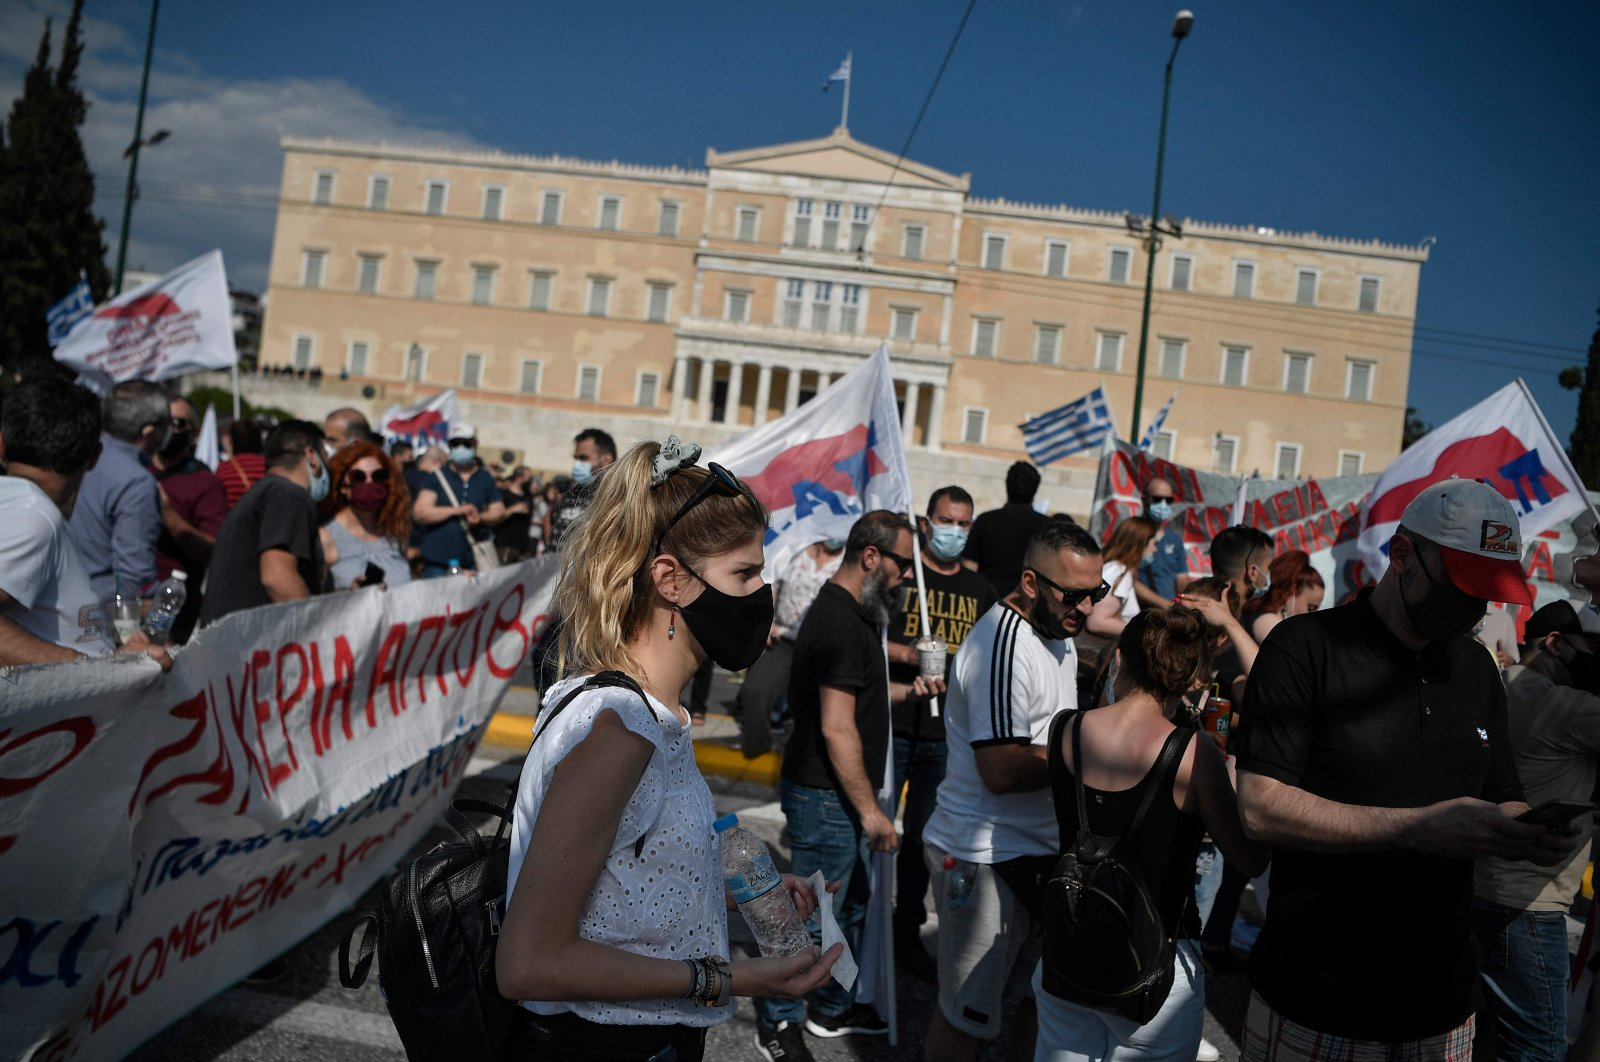 Protesters gather in front of the Greek parliament to protest against a new labor bill, Athens, Greece, June 16, 2021. (AFP Photo)